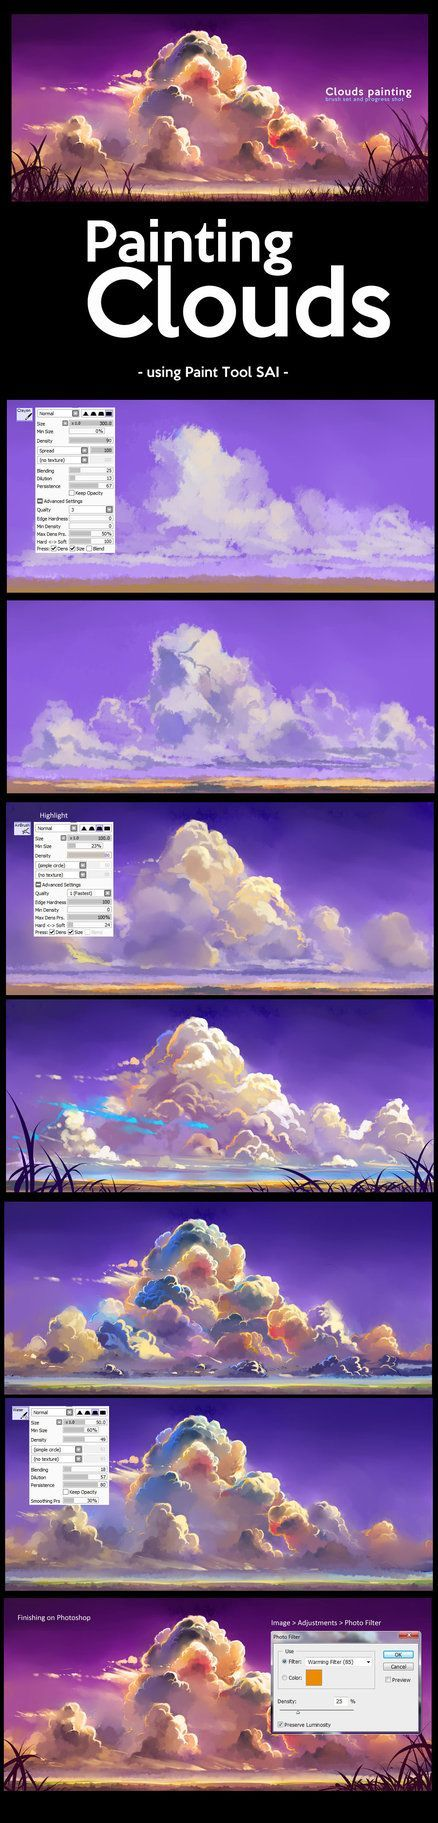 Painting Clouds in Paint Tool SAI by ombobon.deviantart.com on @DeviantArt